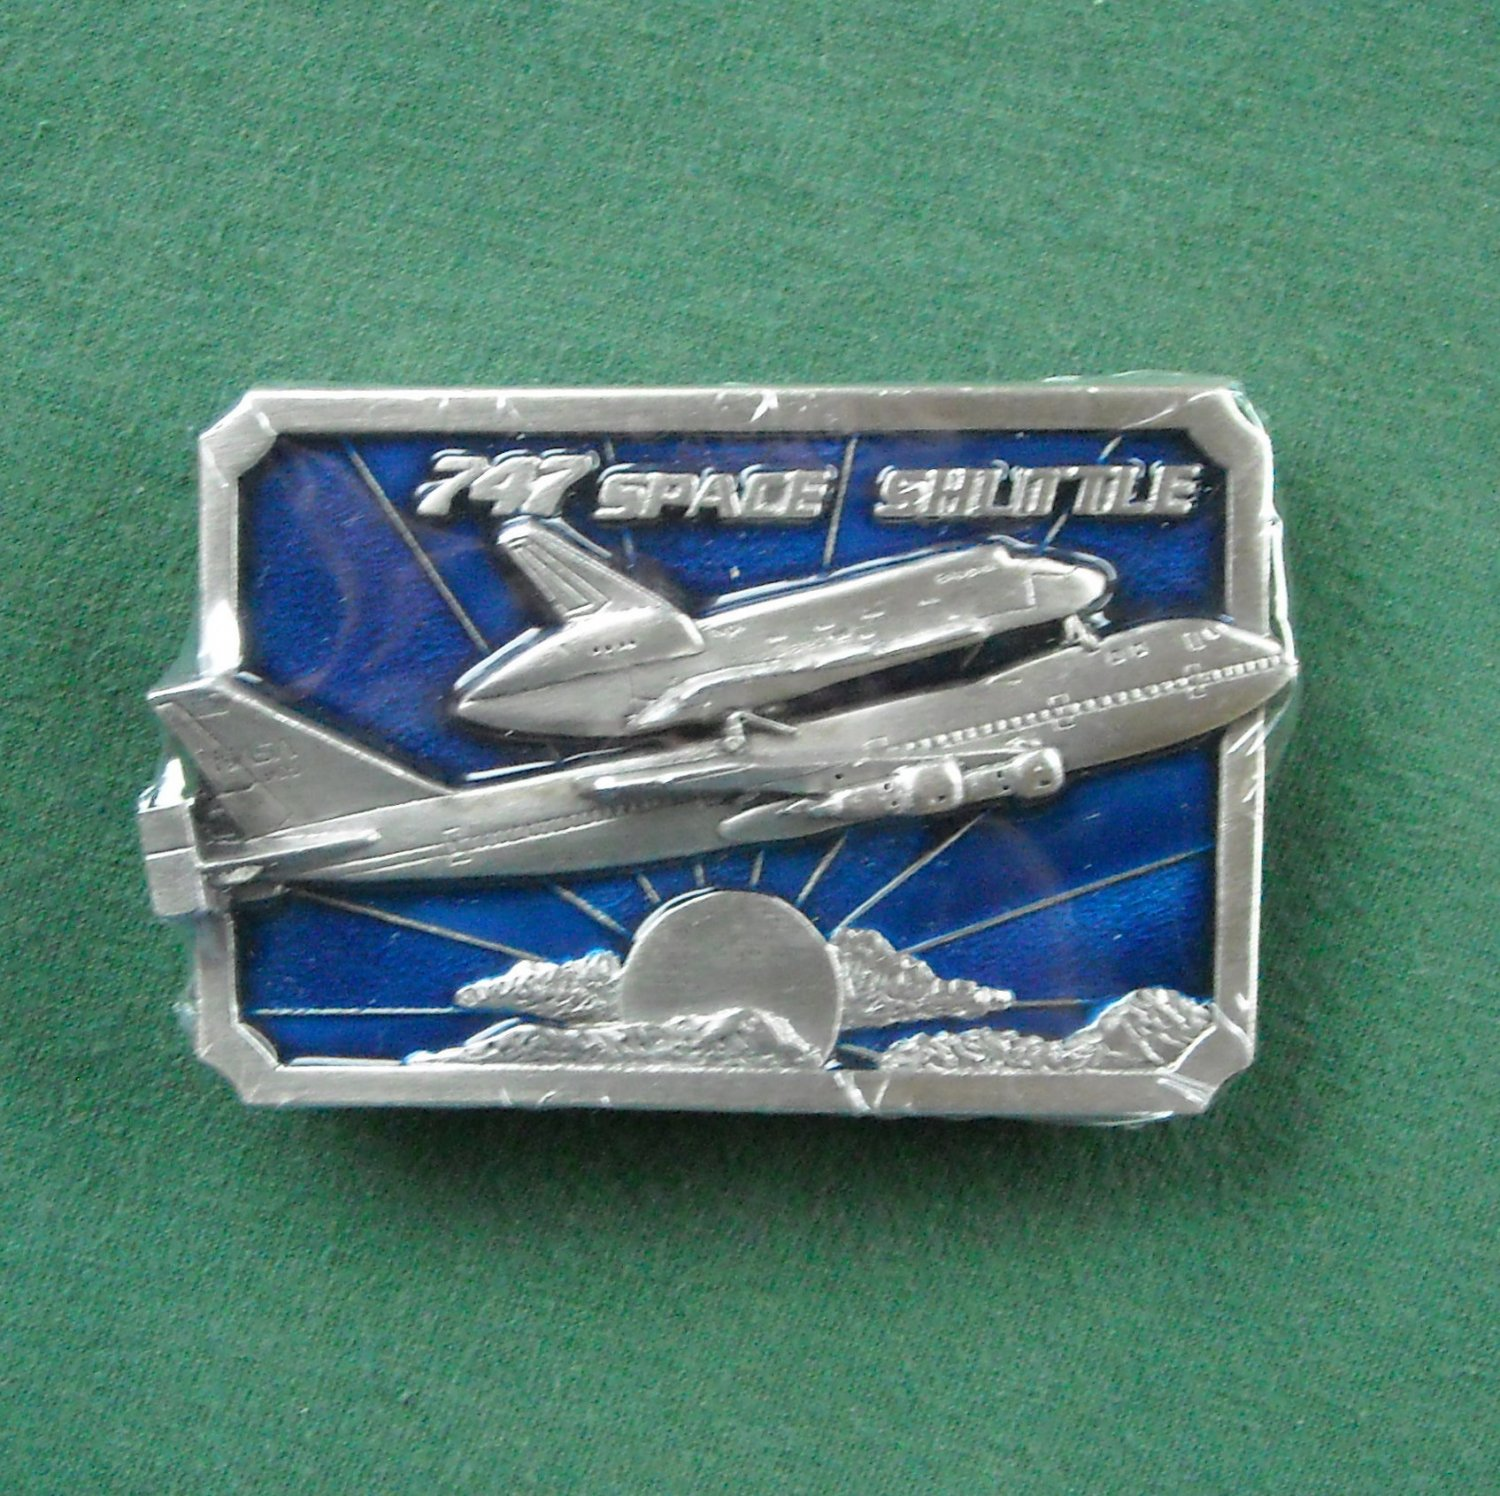 Vintage Siskiyou Boeing with Space Shuttle belt buckle NIB